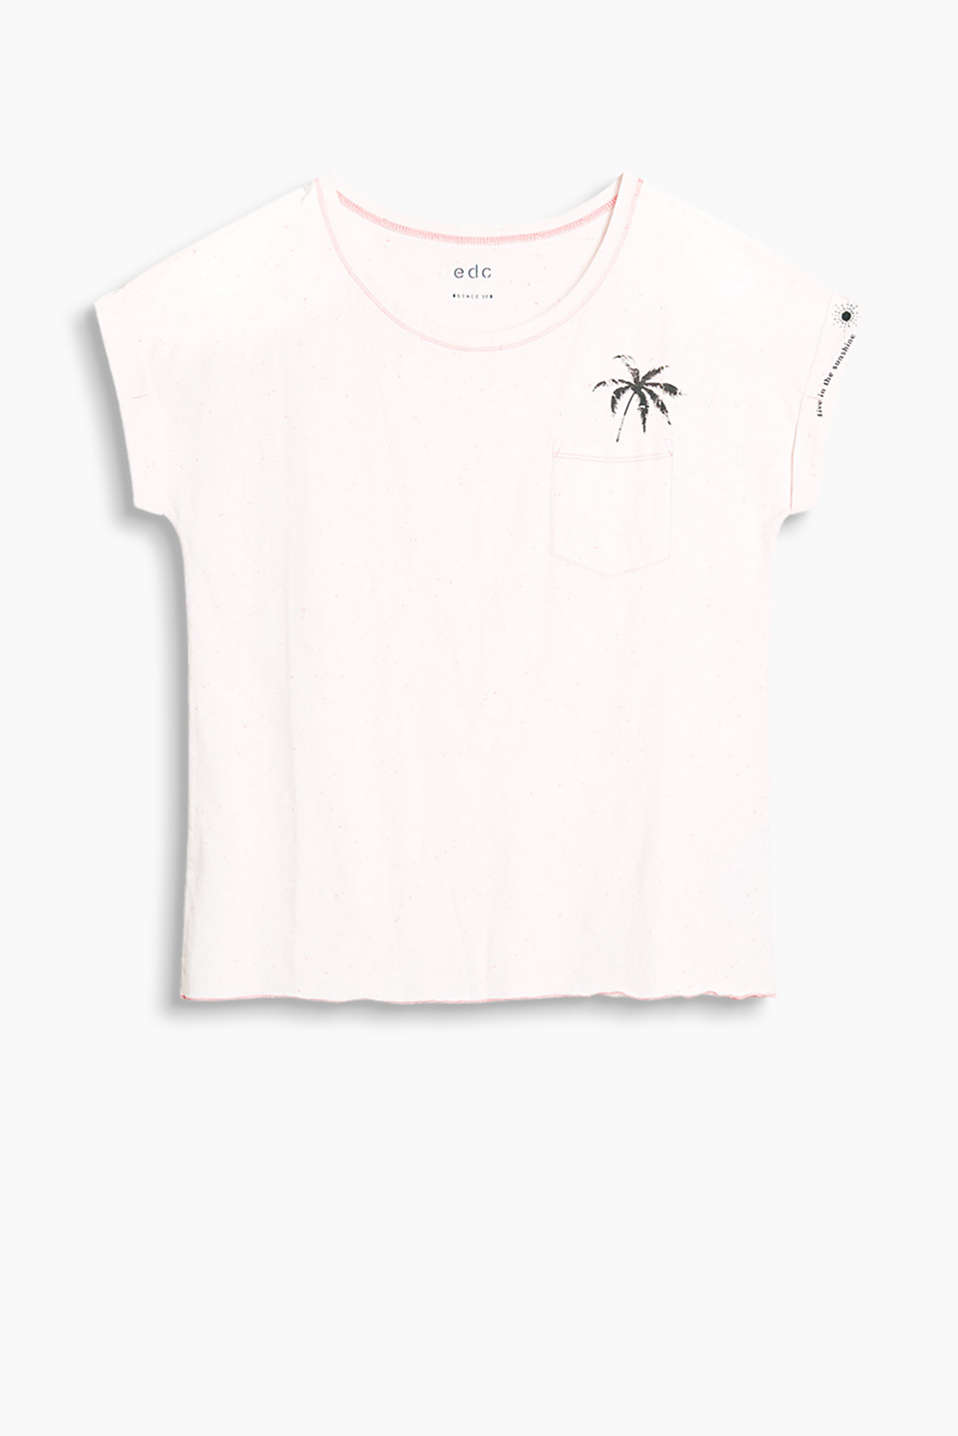 Relaxed T-shirt made from lightweight jersey in a dimpled texture and with a positioned palm tree slogan print.